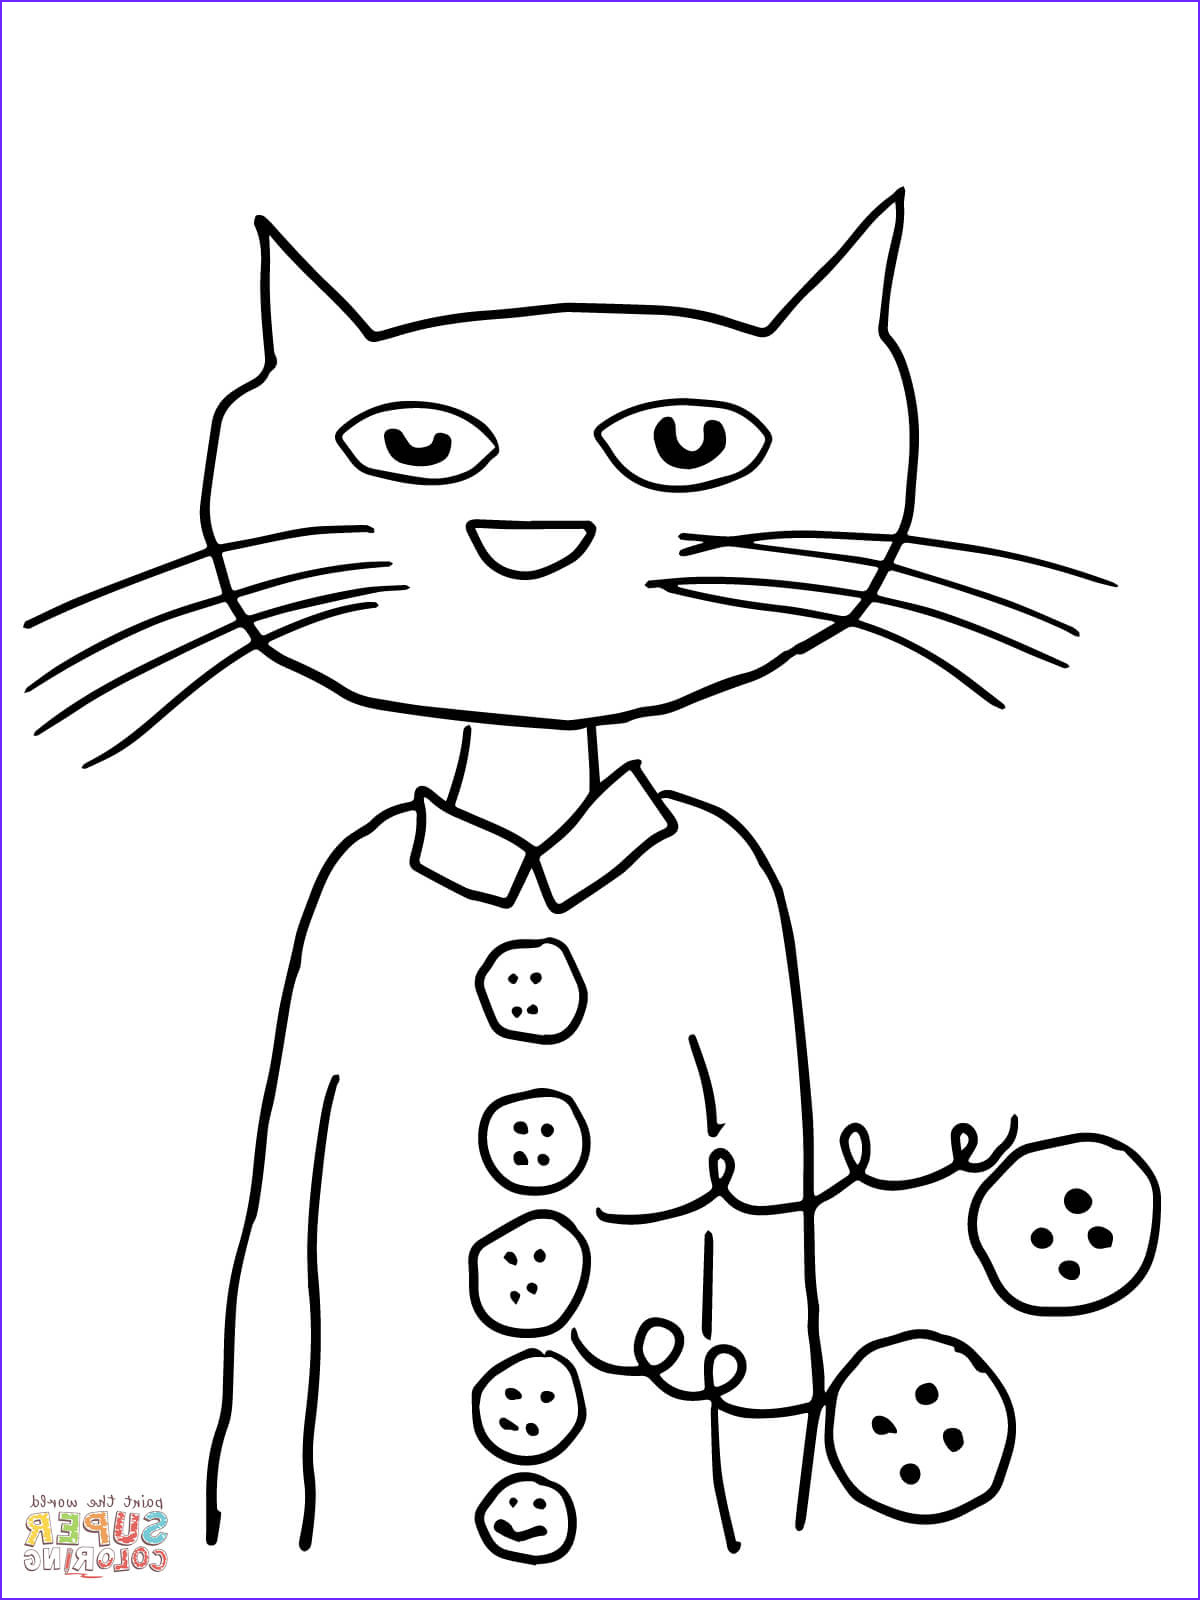 Pete the Cat and His Four Groovy buttons Coloring Page Awesome Stock Pete the Cat Groovy buttons Coloring Page